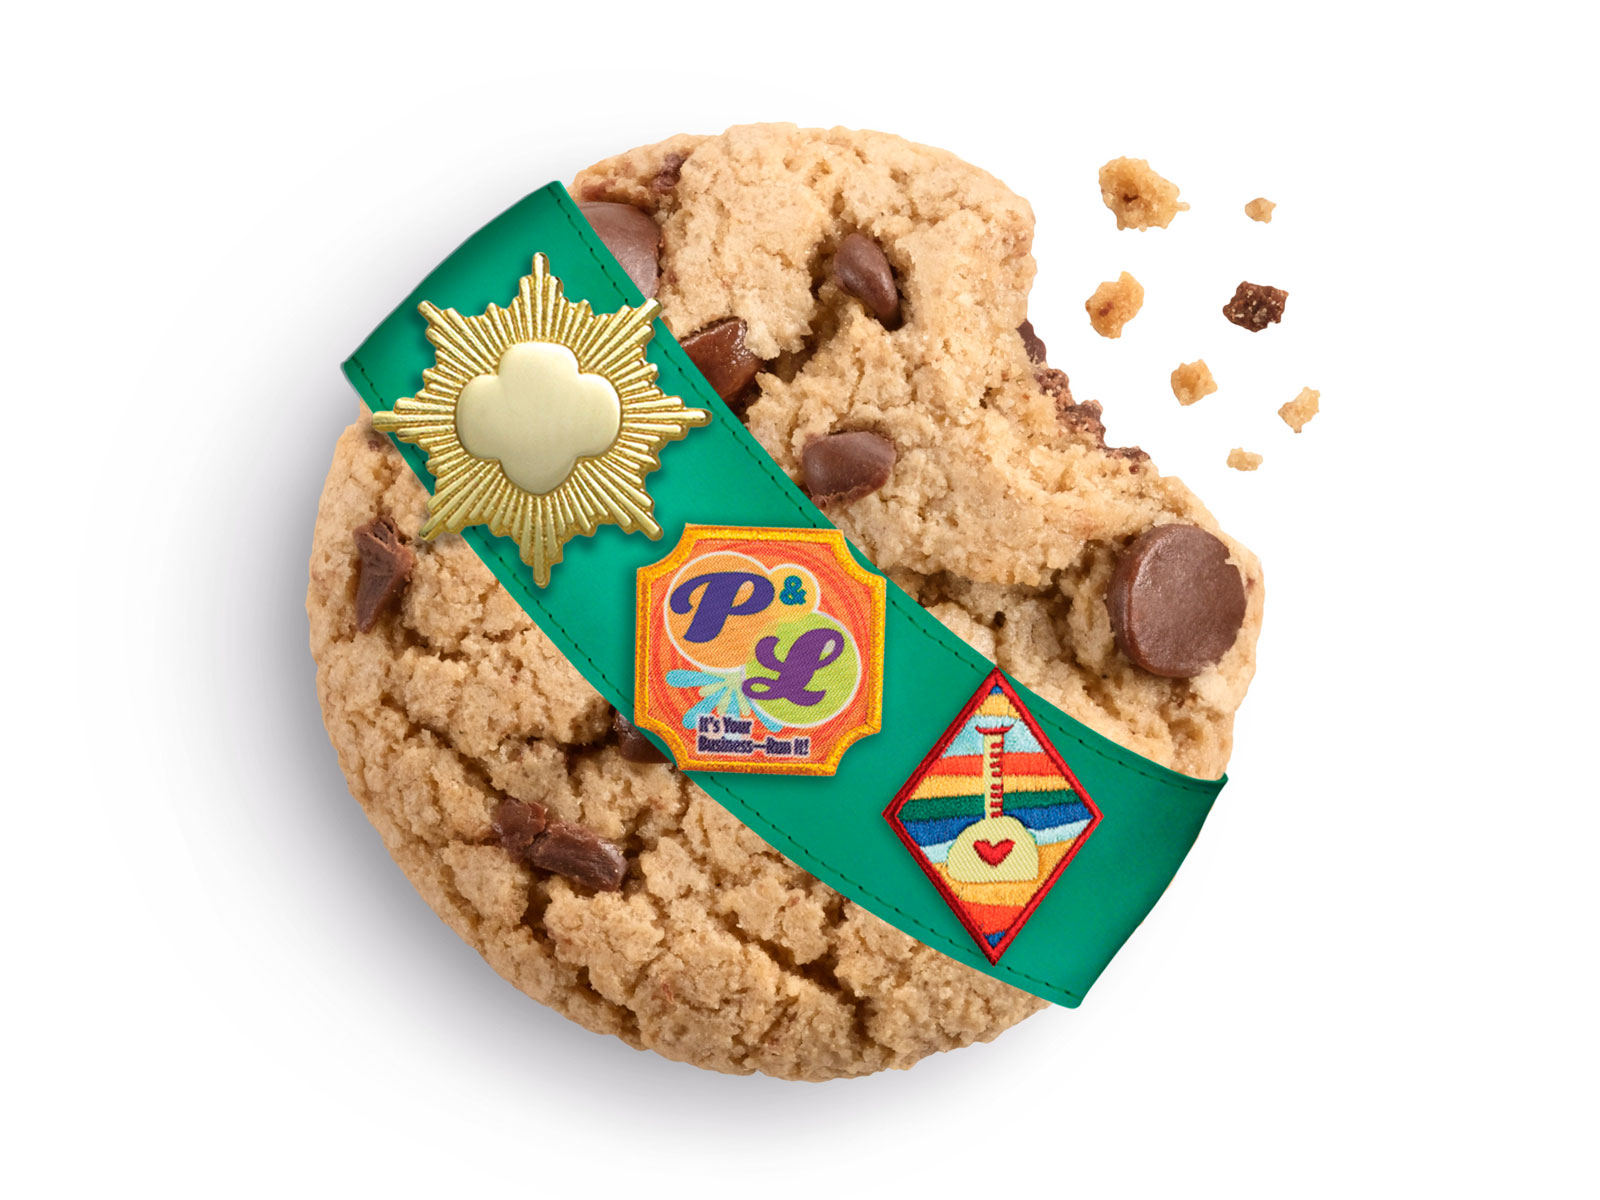 The Girl Scouts' Latest Cookie Flavor Is Here to Sweeten the New Year